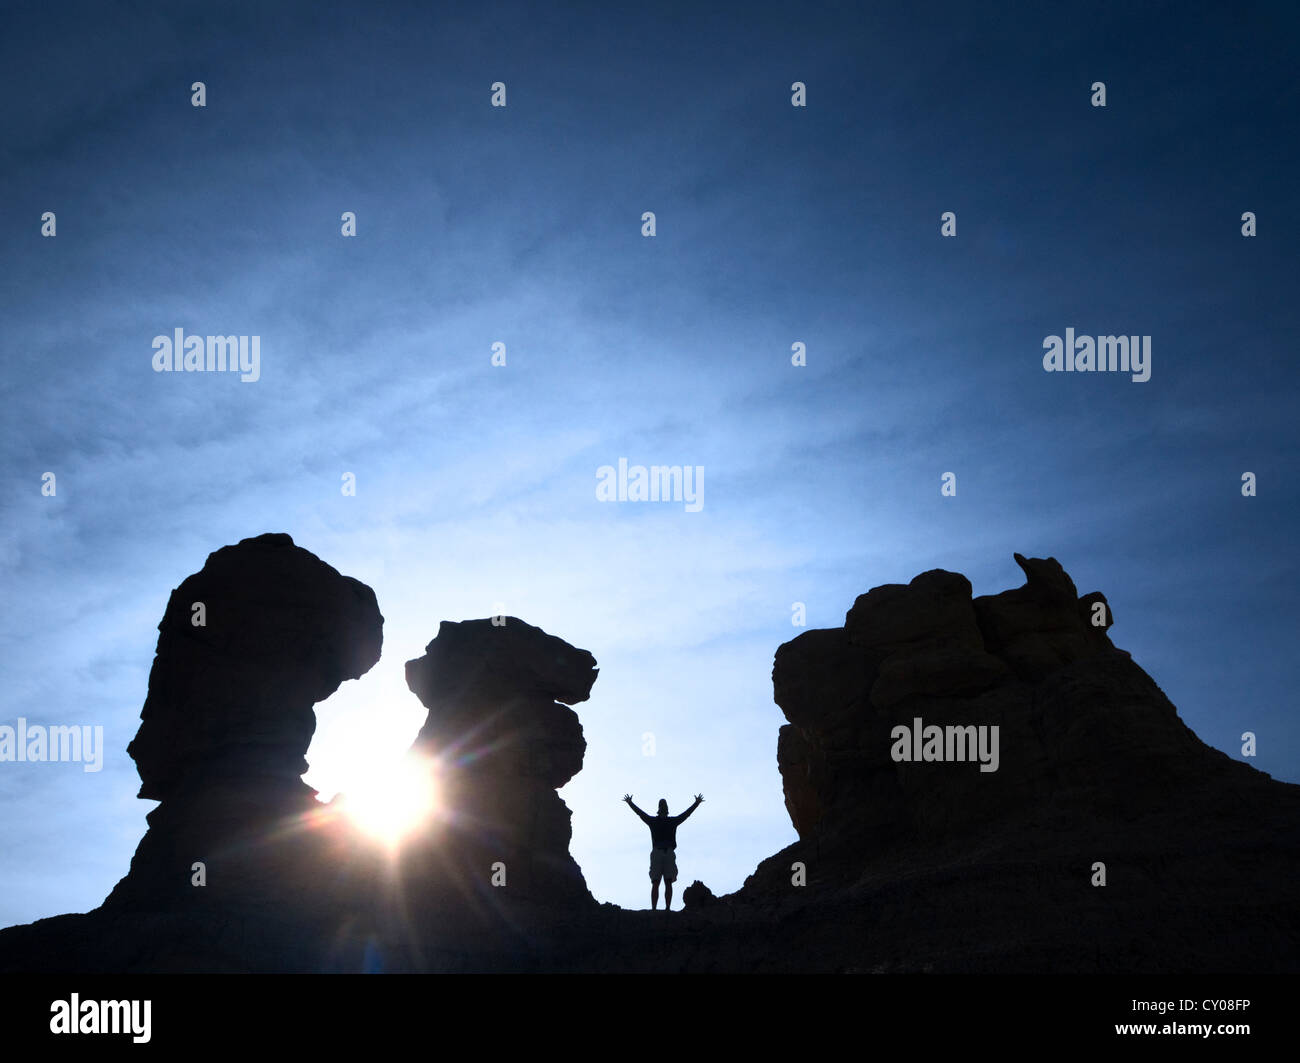 Silhouette of male figure standing on rock and sunrise - Stock Image